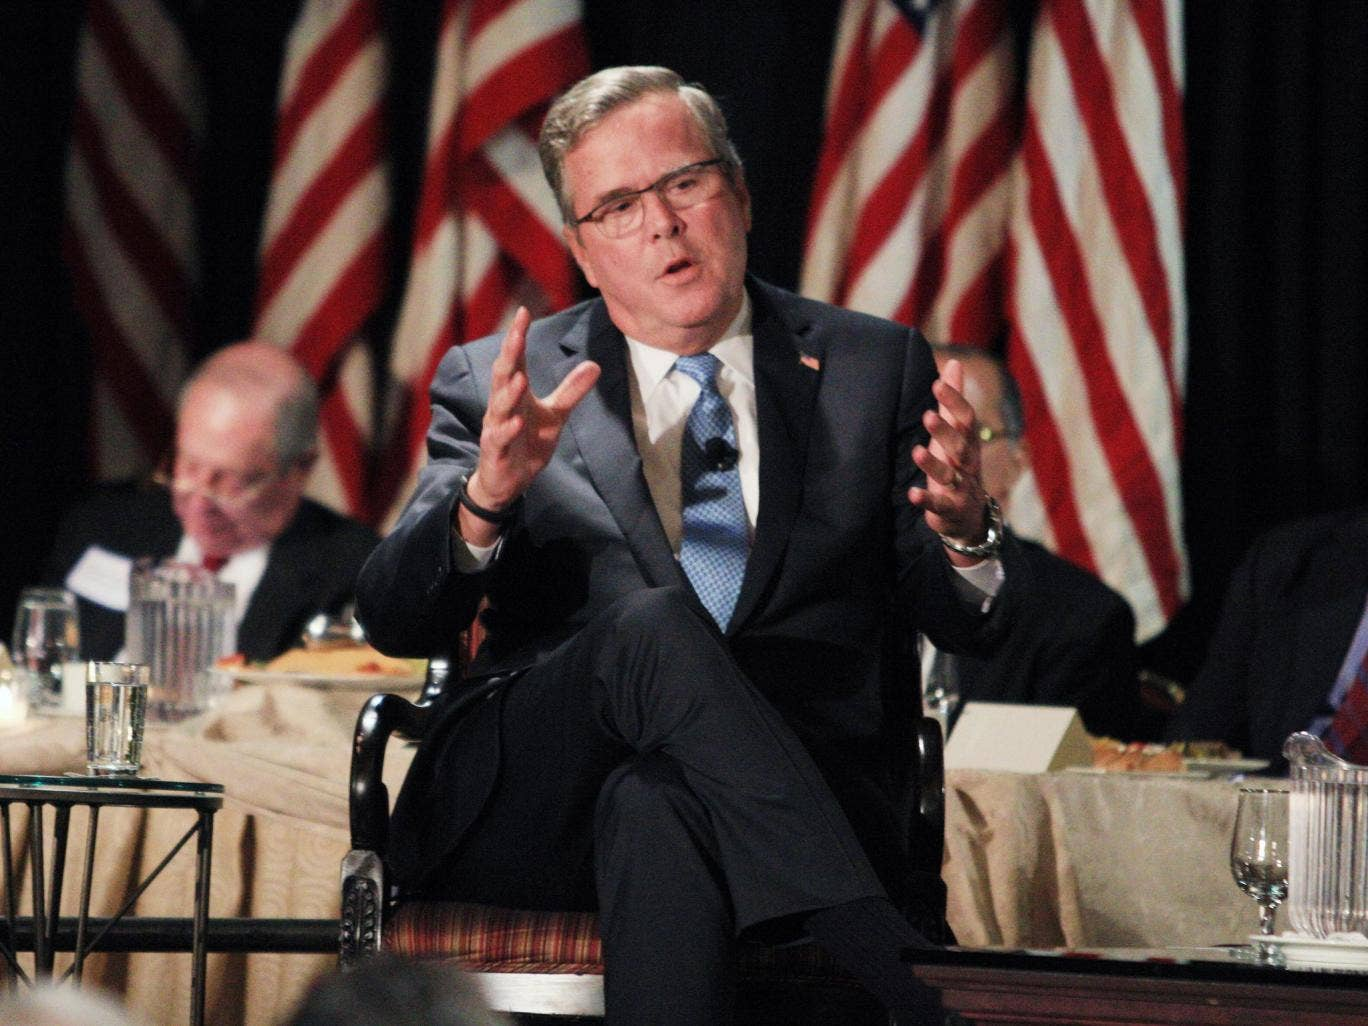 Jeb Bush says he spends every day trying not to think about whether to run for the presidency